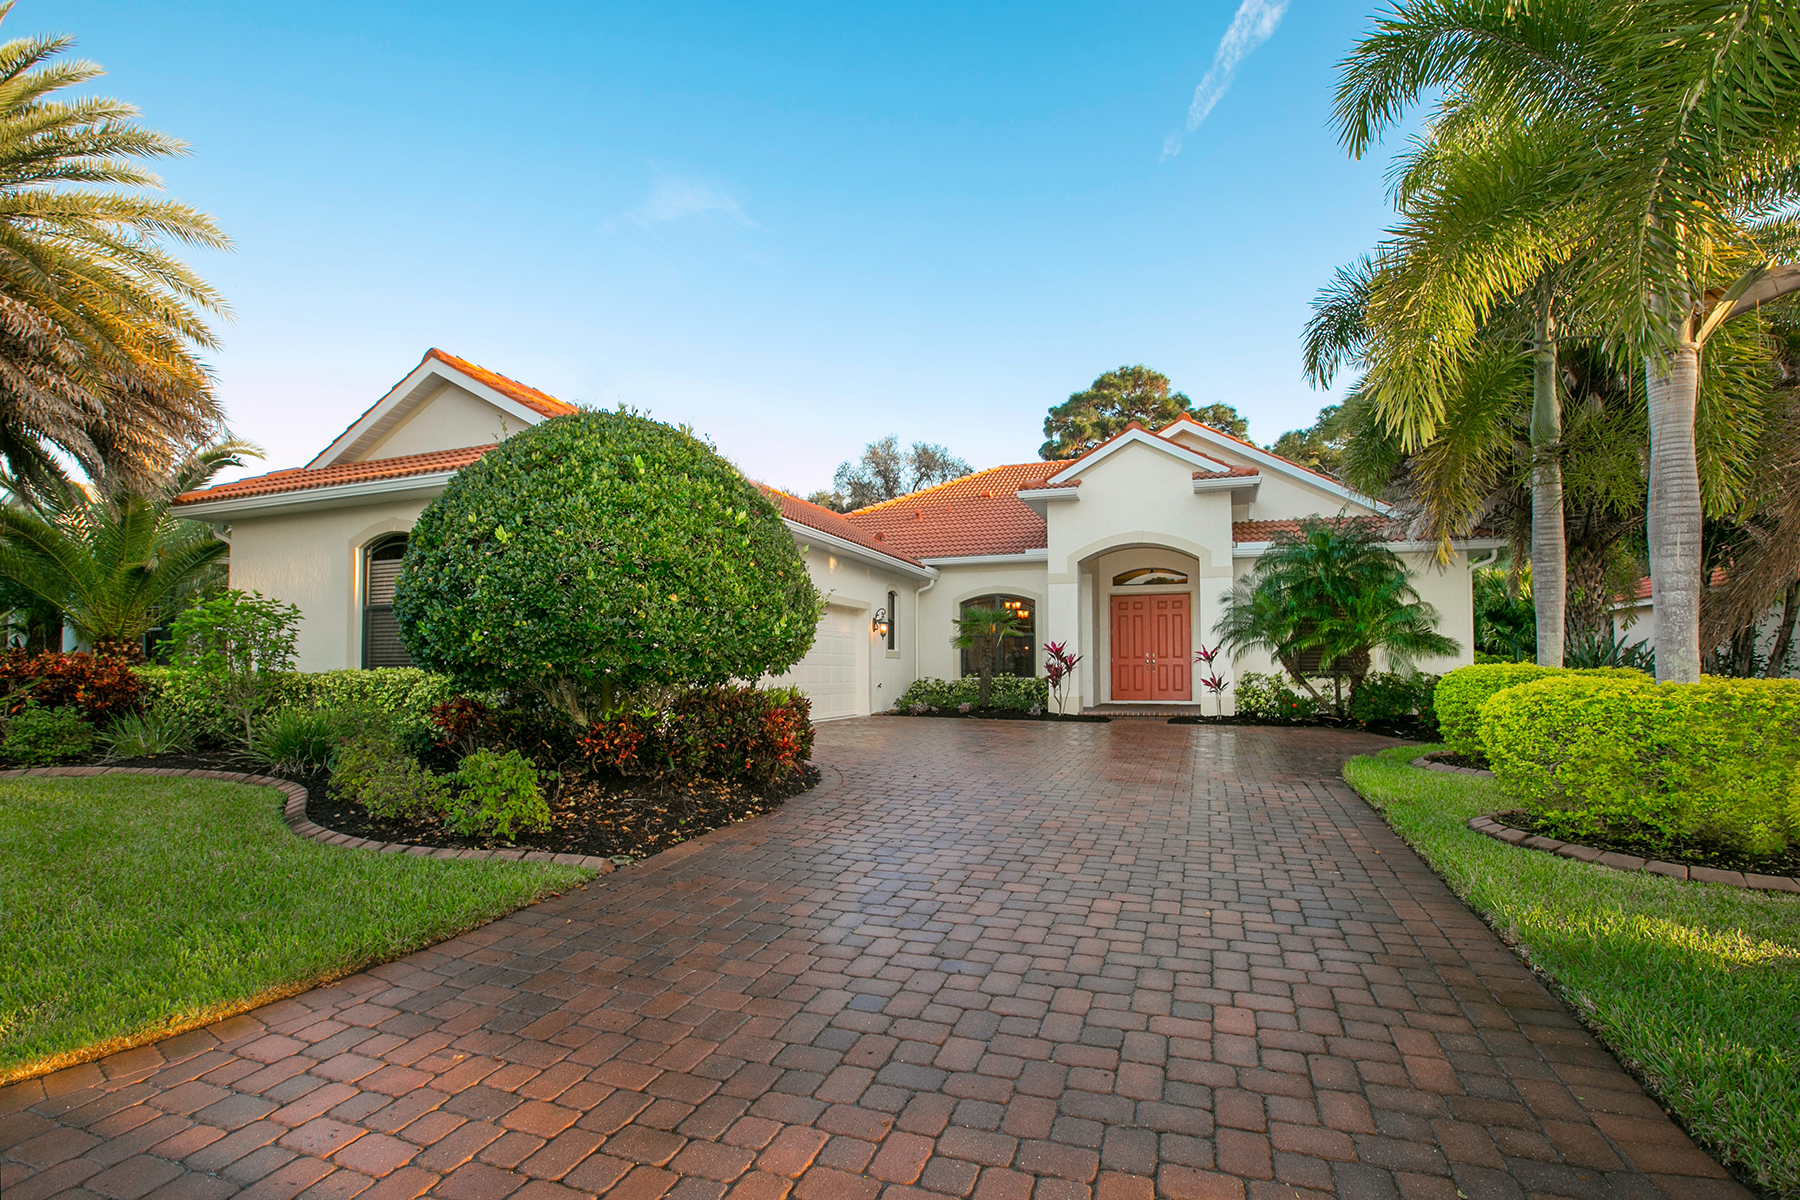 Single Family Home for Sale at PELICAN POINTE 1306 Tuscany Blvd Venice, Florida 34292 United States